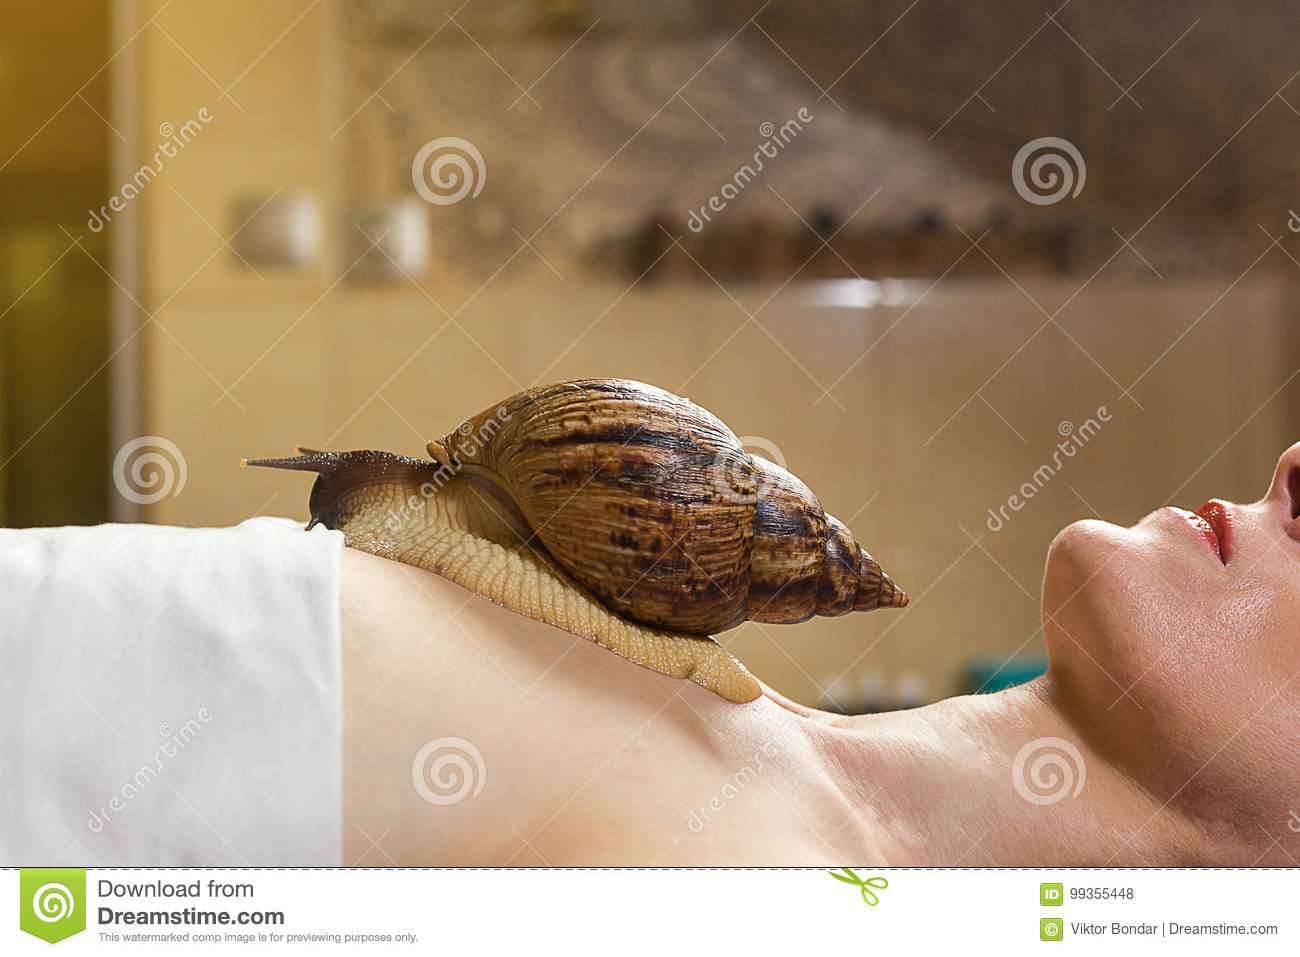 Achatina snails in cosmetology: how to use 85